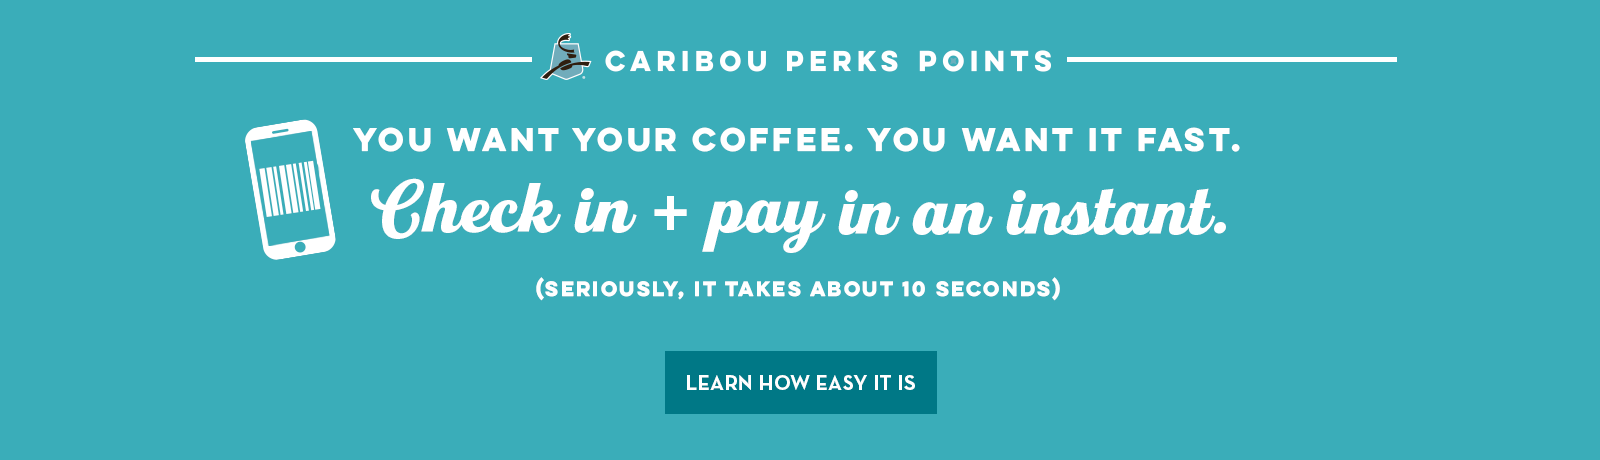 Caribou perks pointsYou want your coffee. You want it fast. Check in and pay in an instant. (Seriously, it takes about 10 seconds)Learn how easy it is